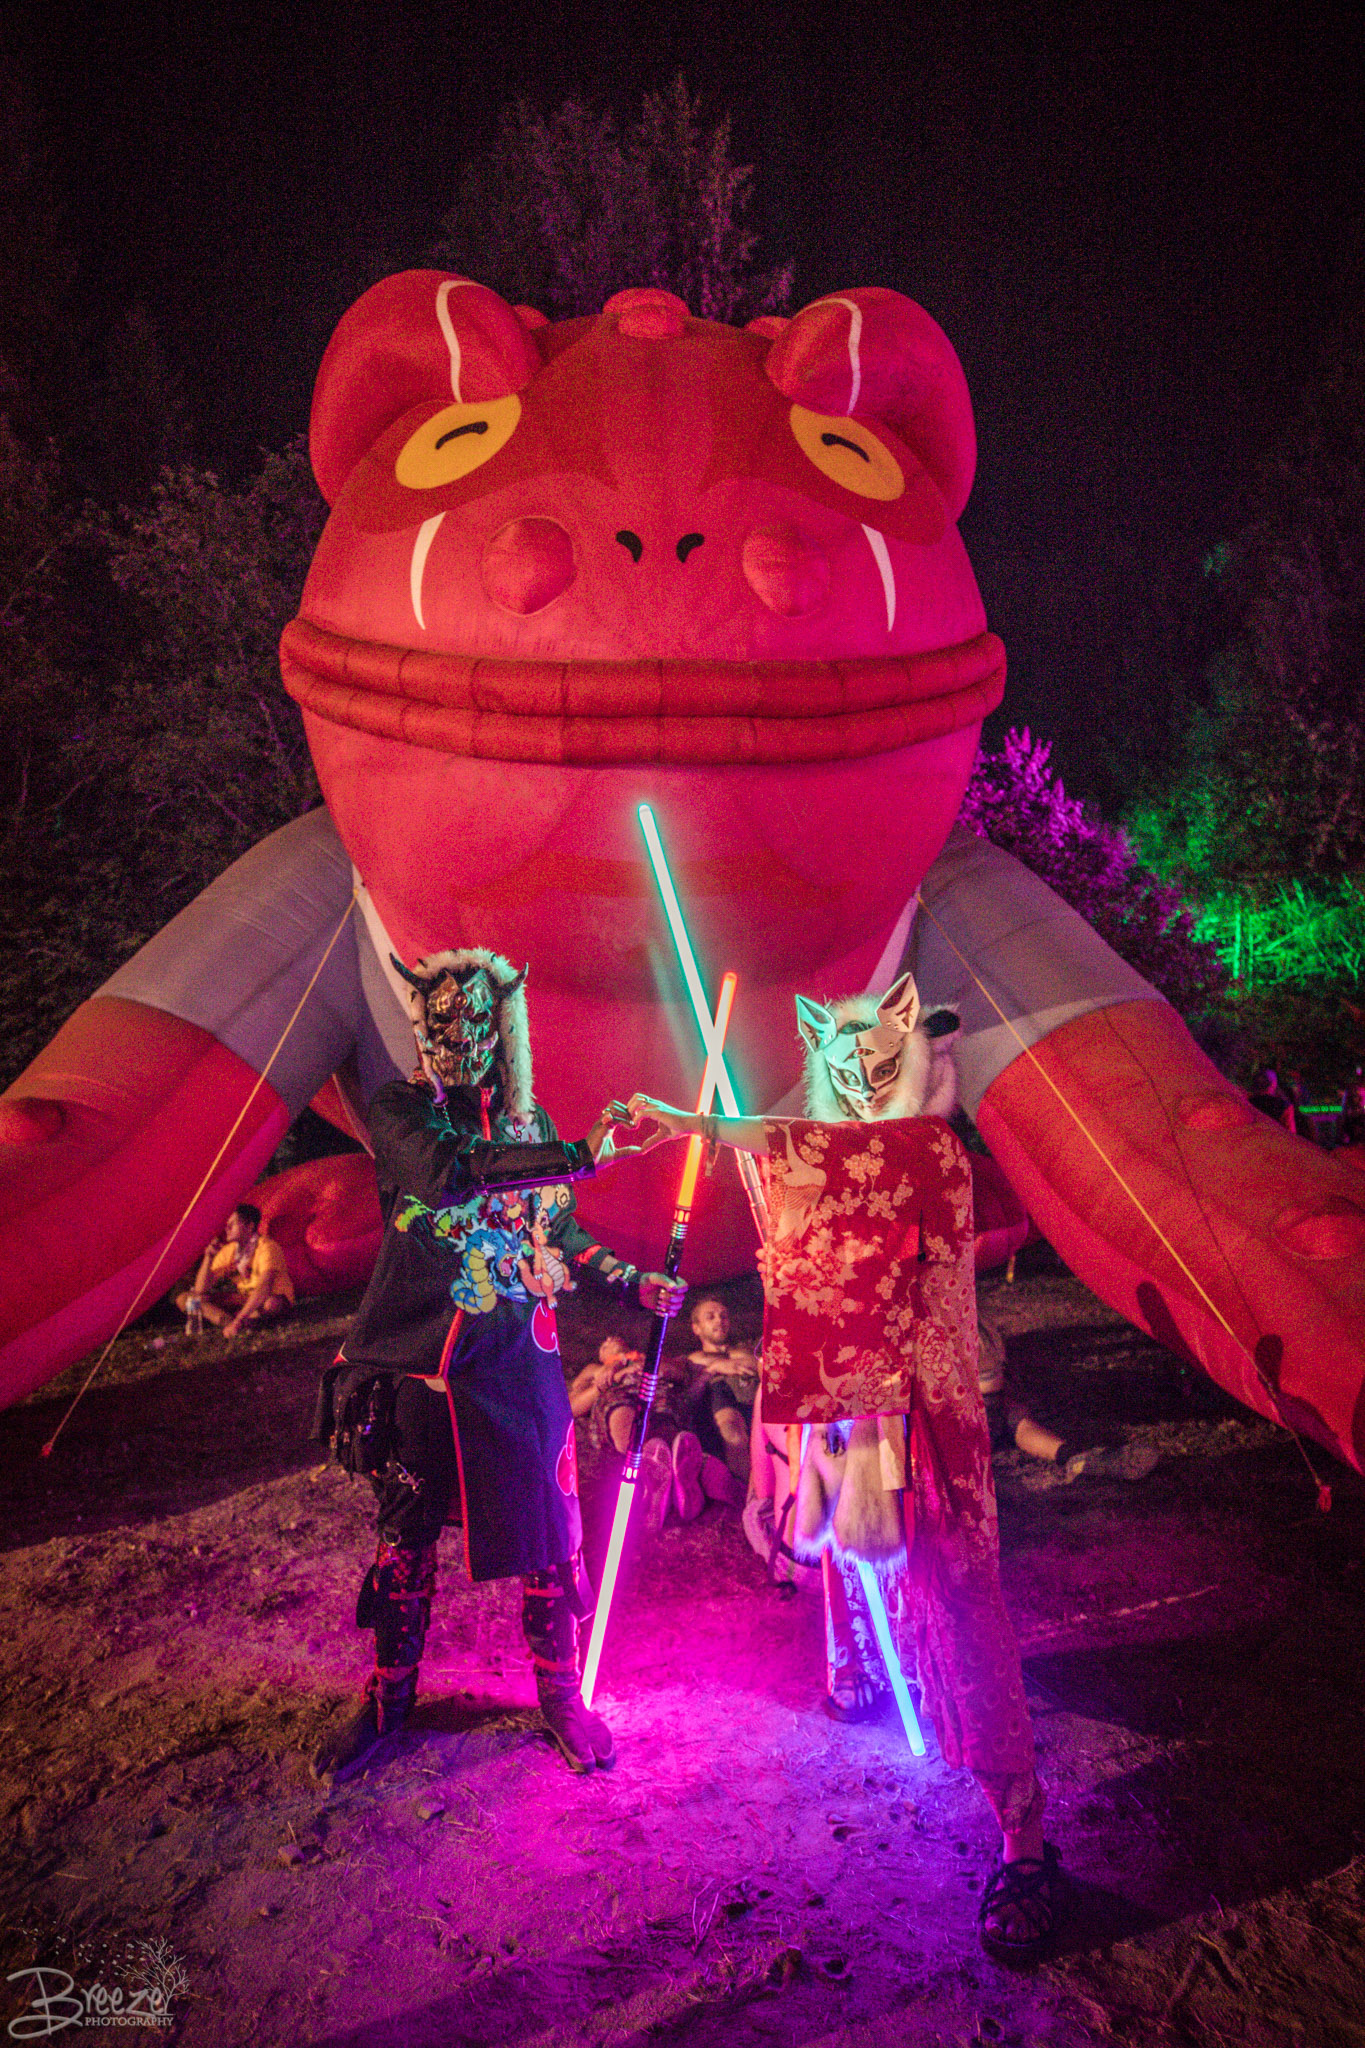 Brie'Ana Breeze Photography & Media - Shambhala 2018-0895.jpg